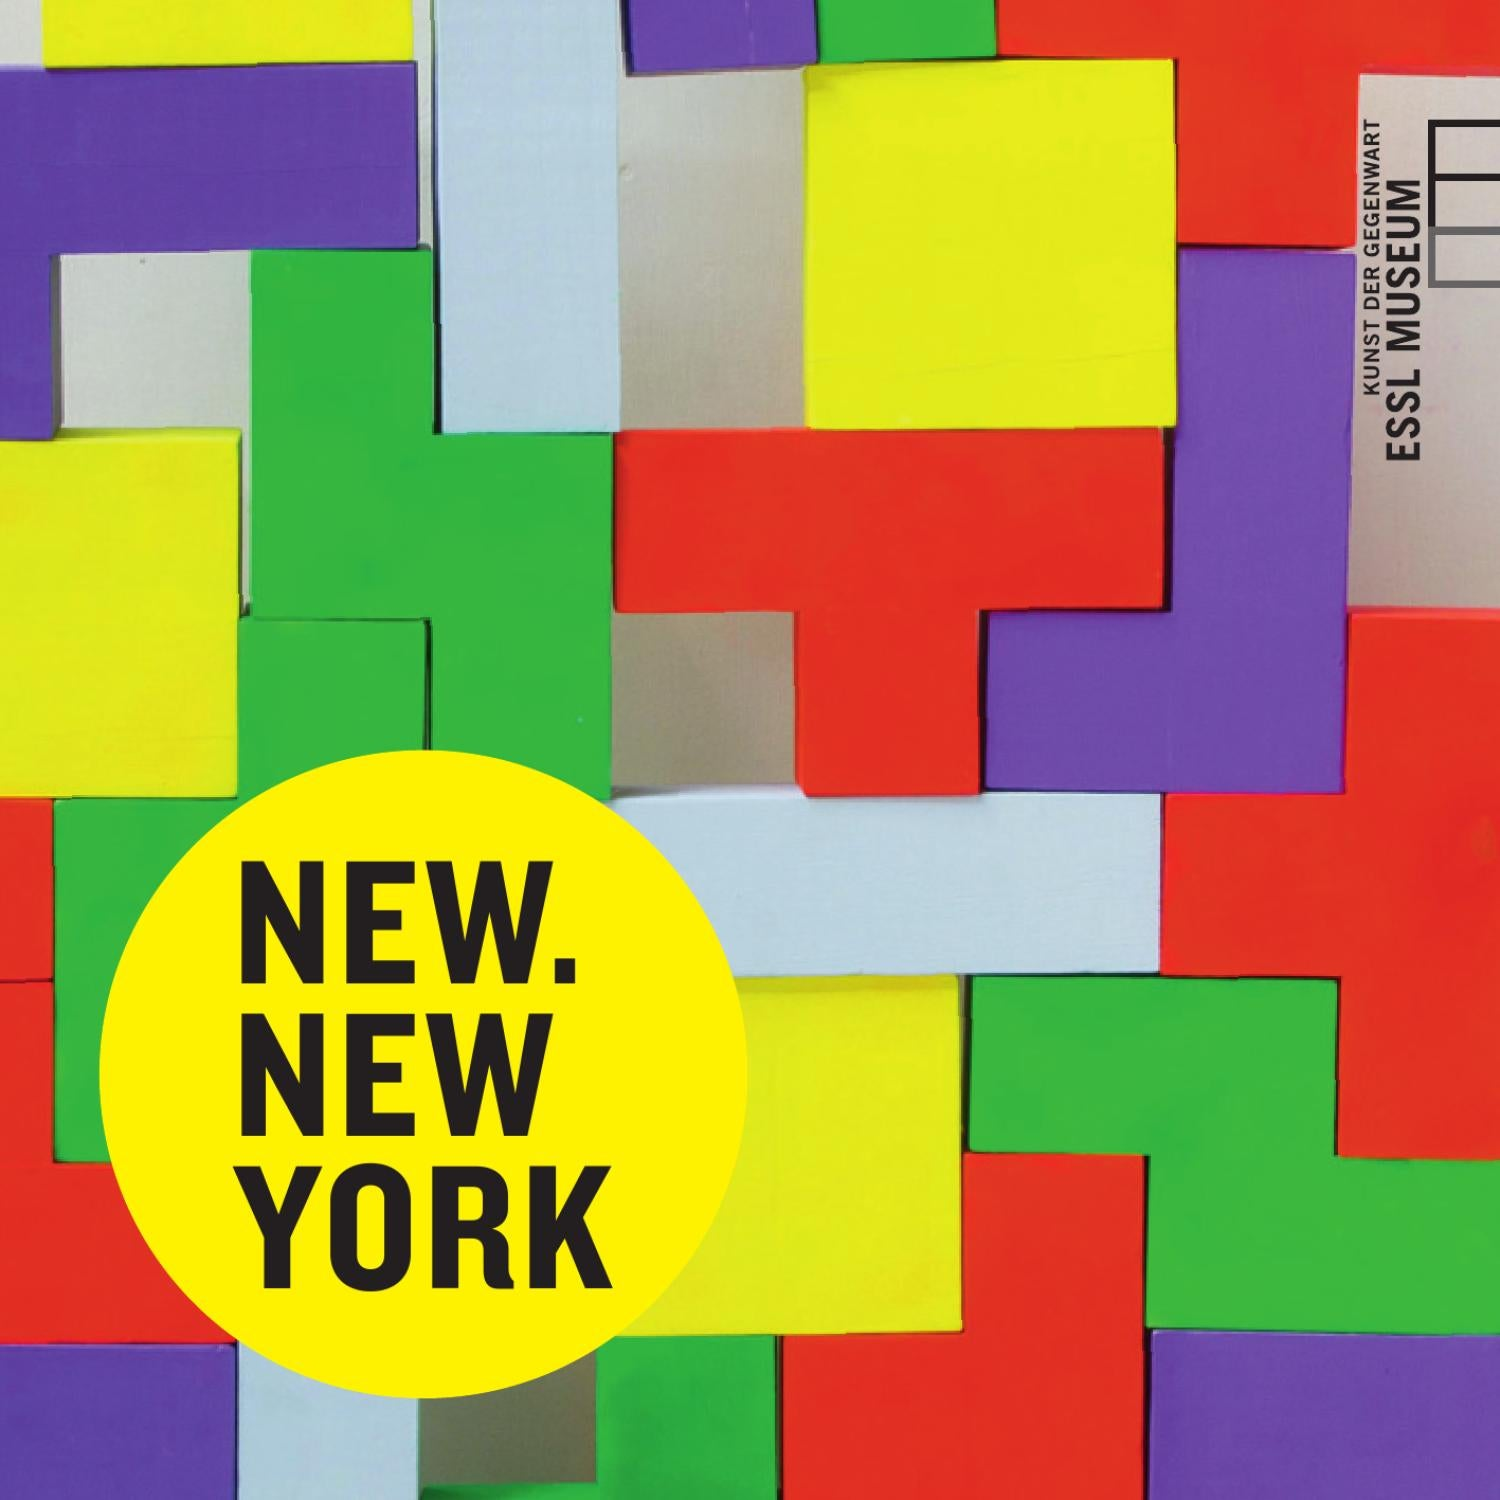 New New York By Essl Museum Issuu